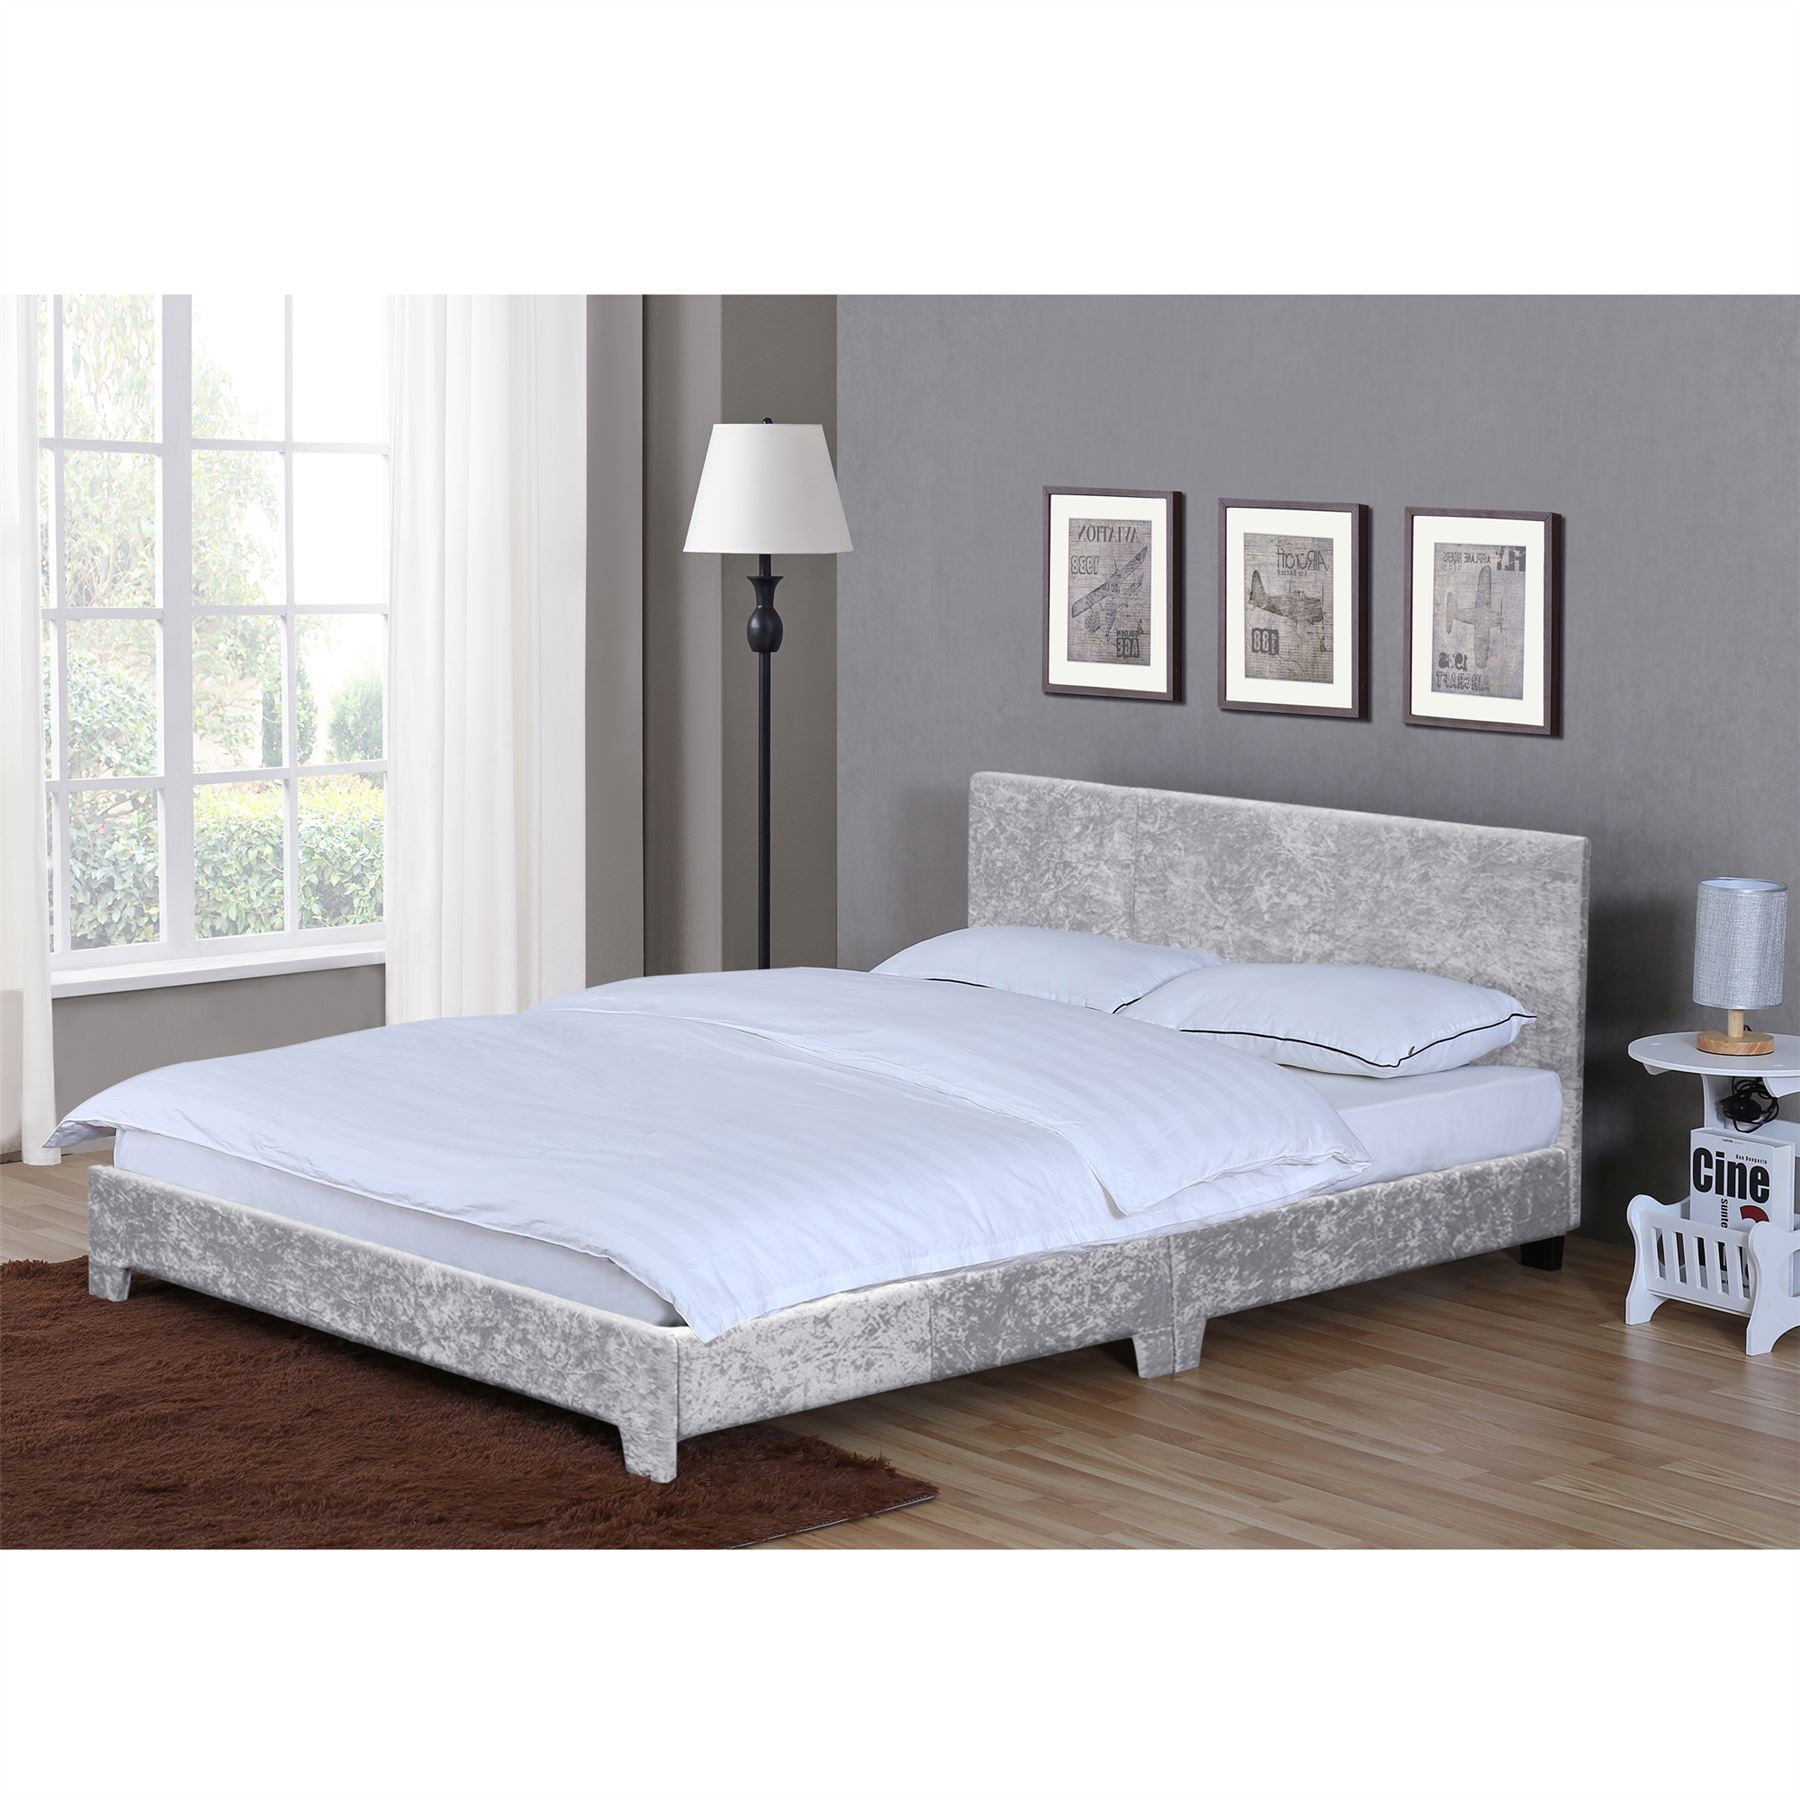 Victoria Double King Bed 4ft6 5ft Modern Upholstered